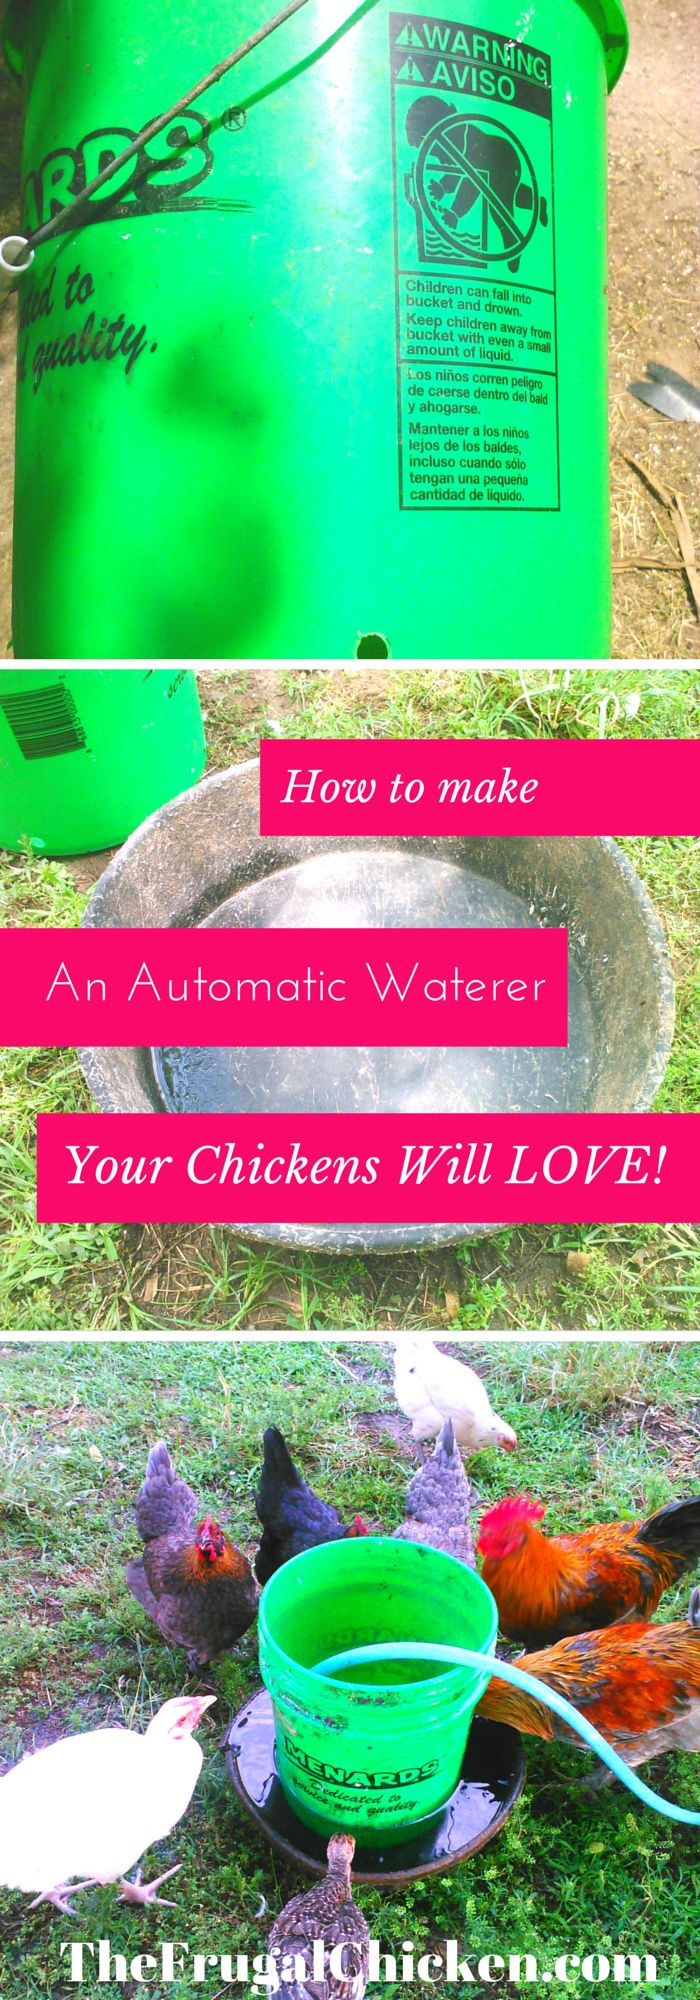 how to make a water feeder for chickens